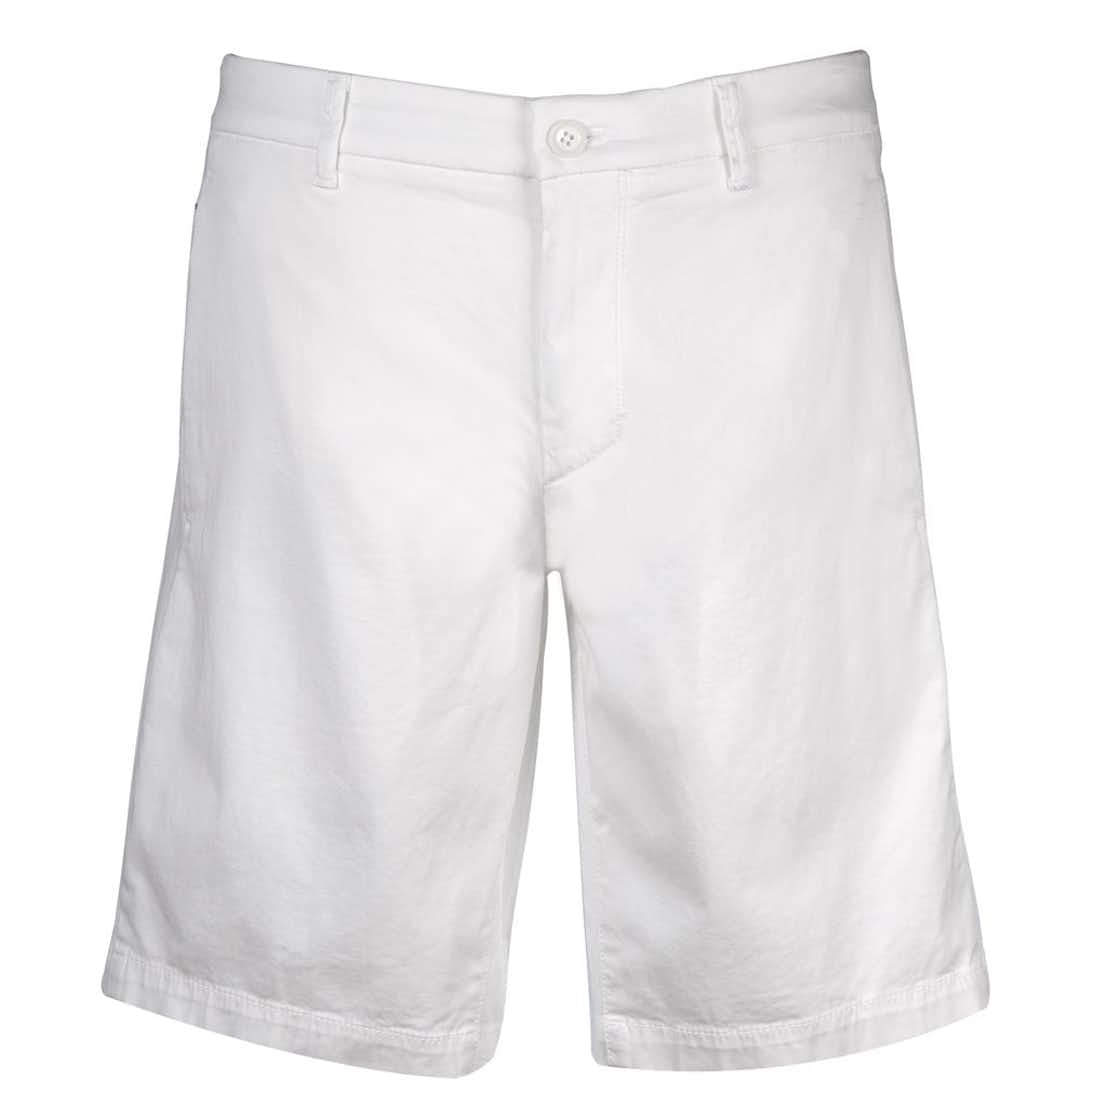 The Open BOSS Slim-Fit Shorts - White